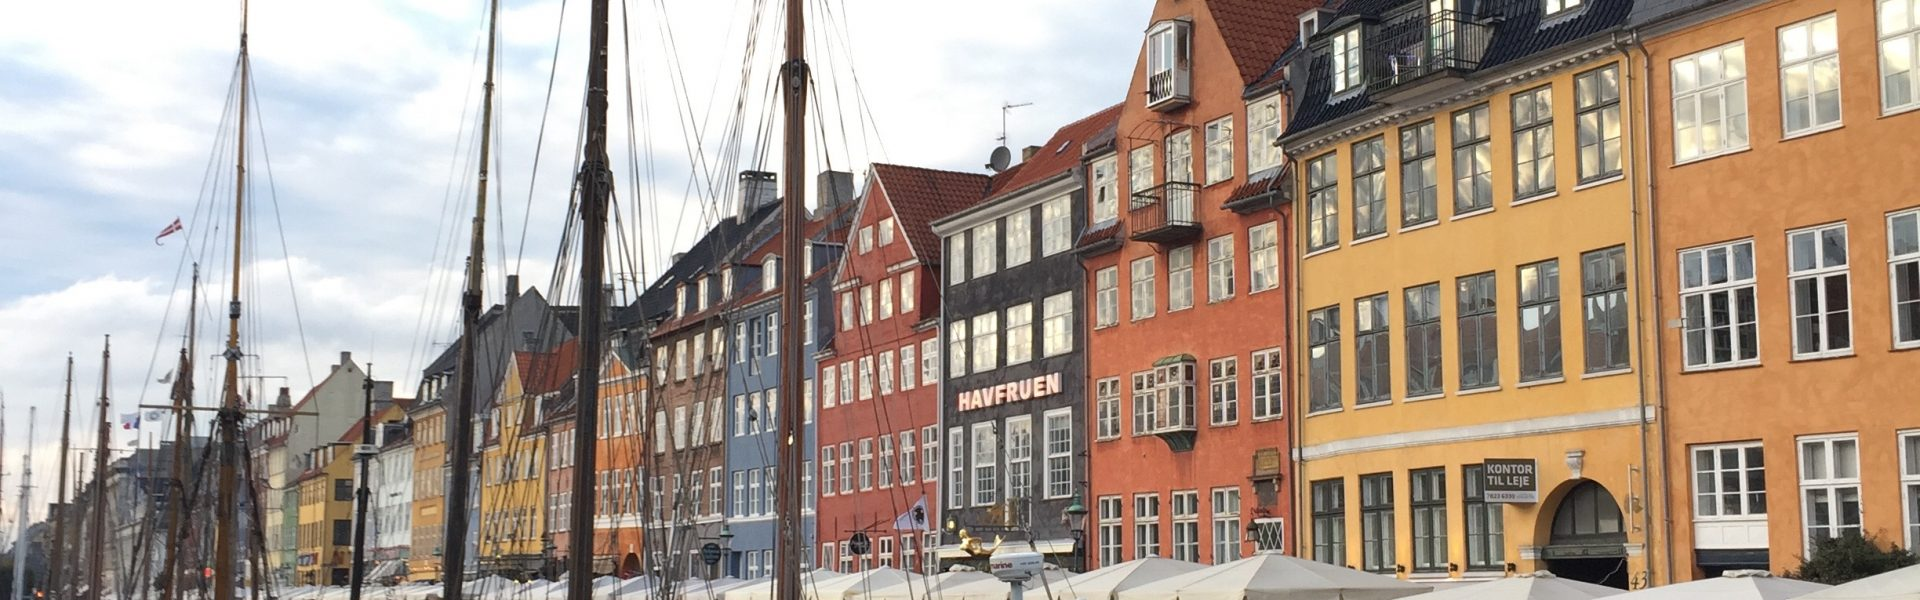 vegan-foodie-city-guide-copenhagen-denmark